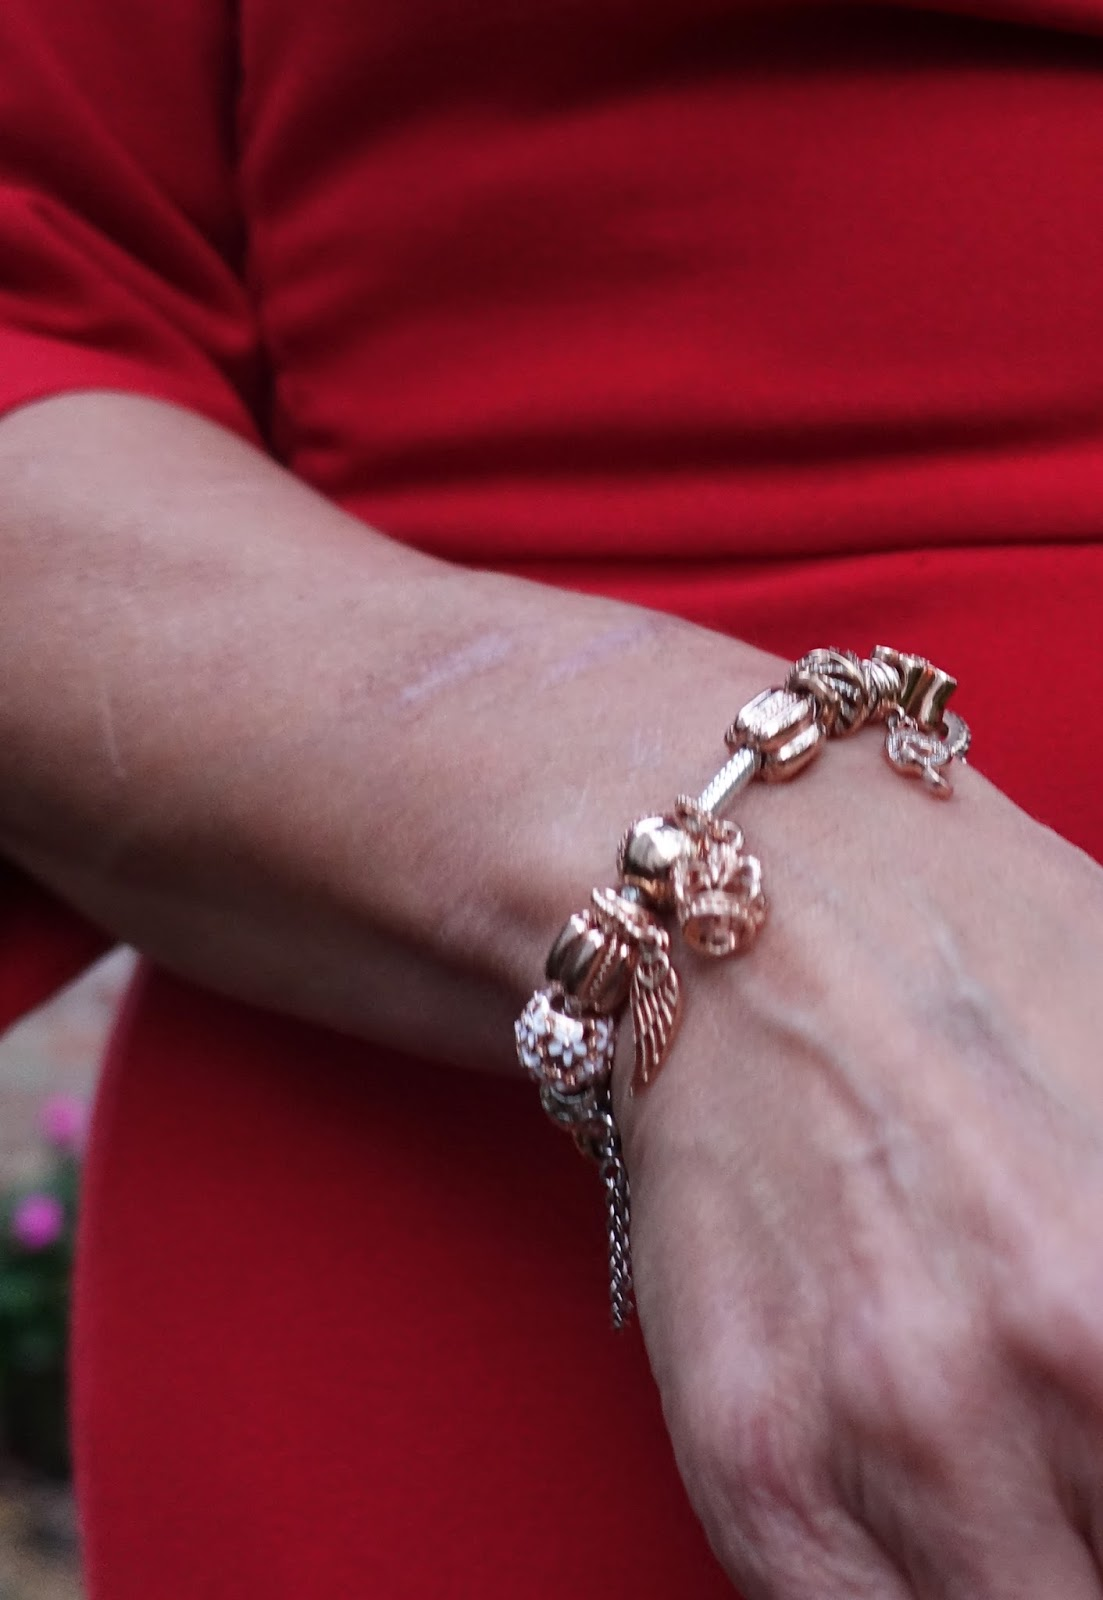 Image showing a close up of a woman wearing a Pandora rose gold bracelet with charms